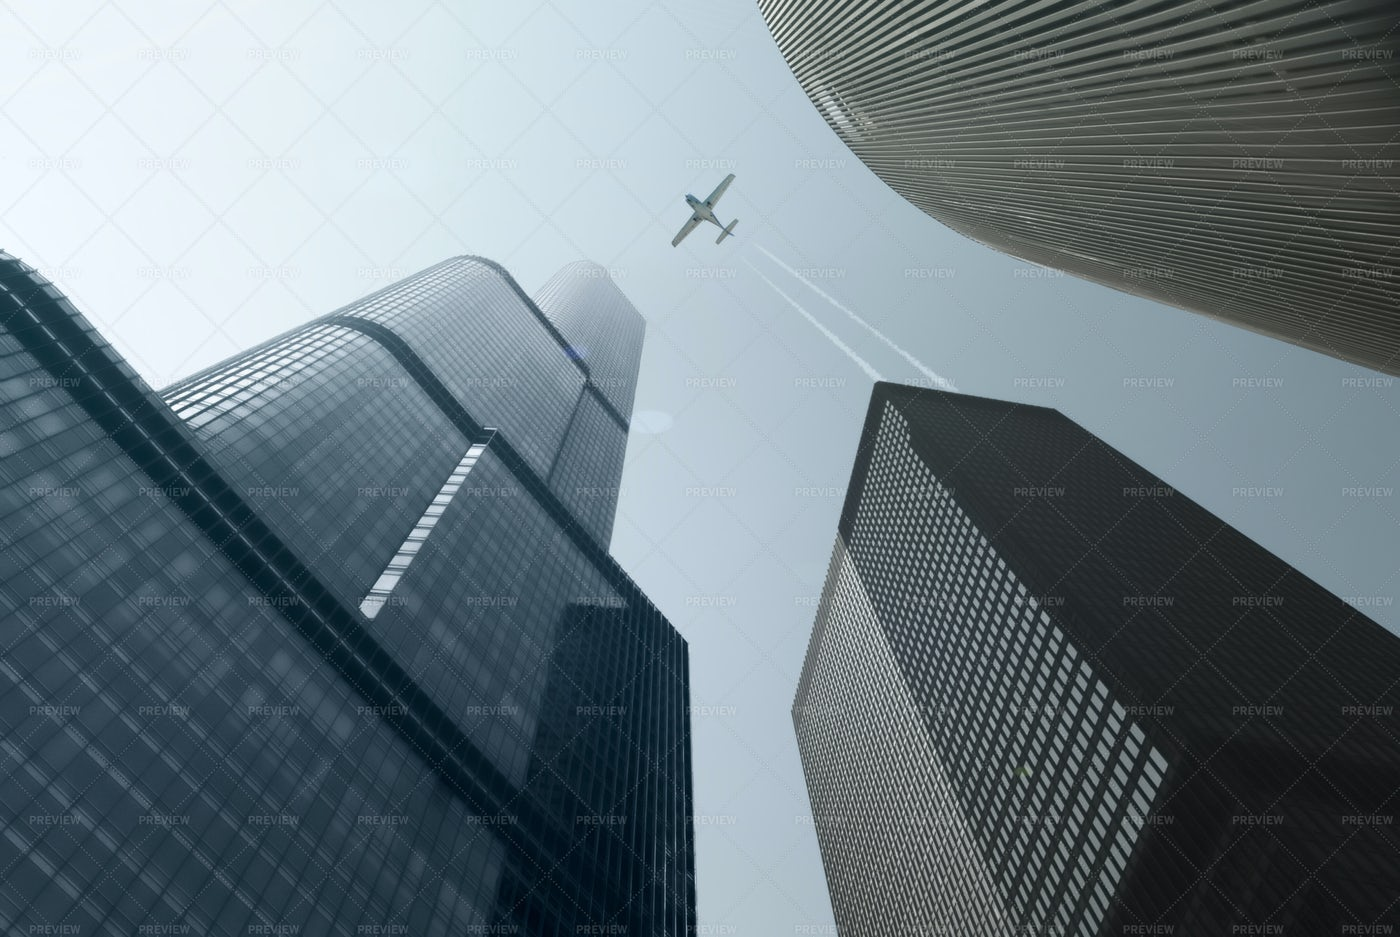 Airplane Over The Skyscrapers: Stock Photos